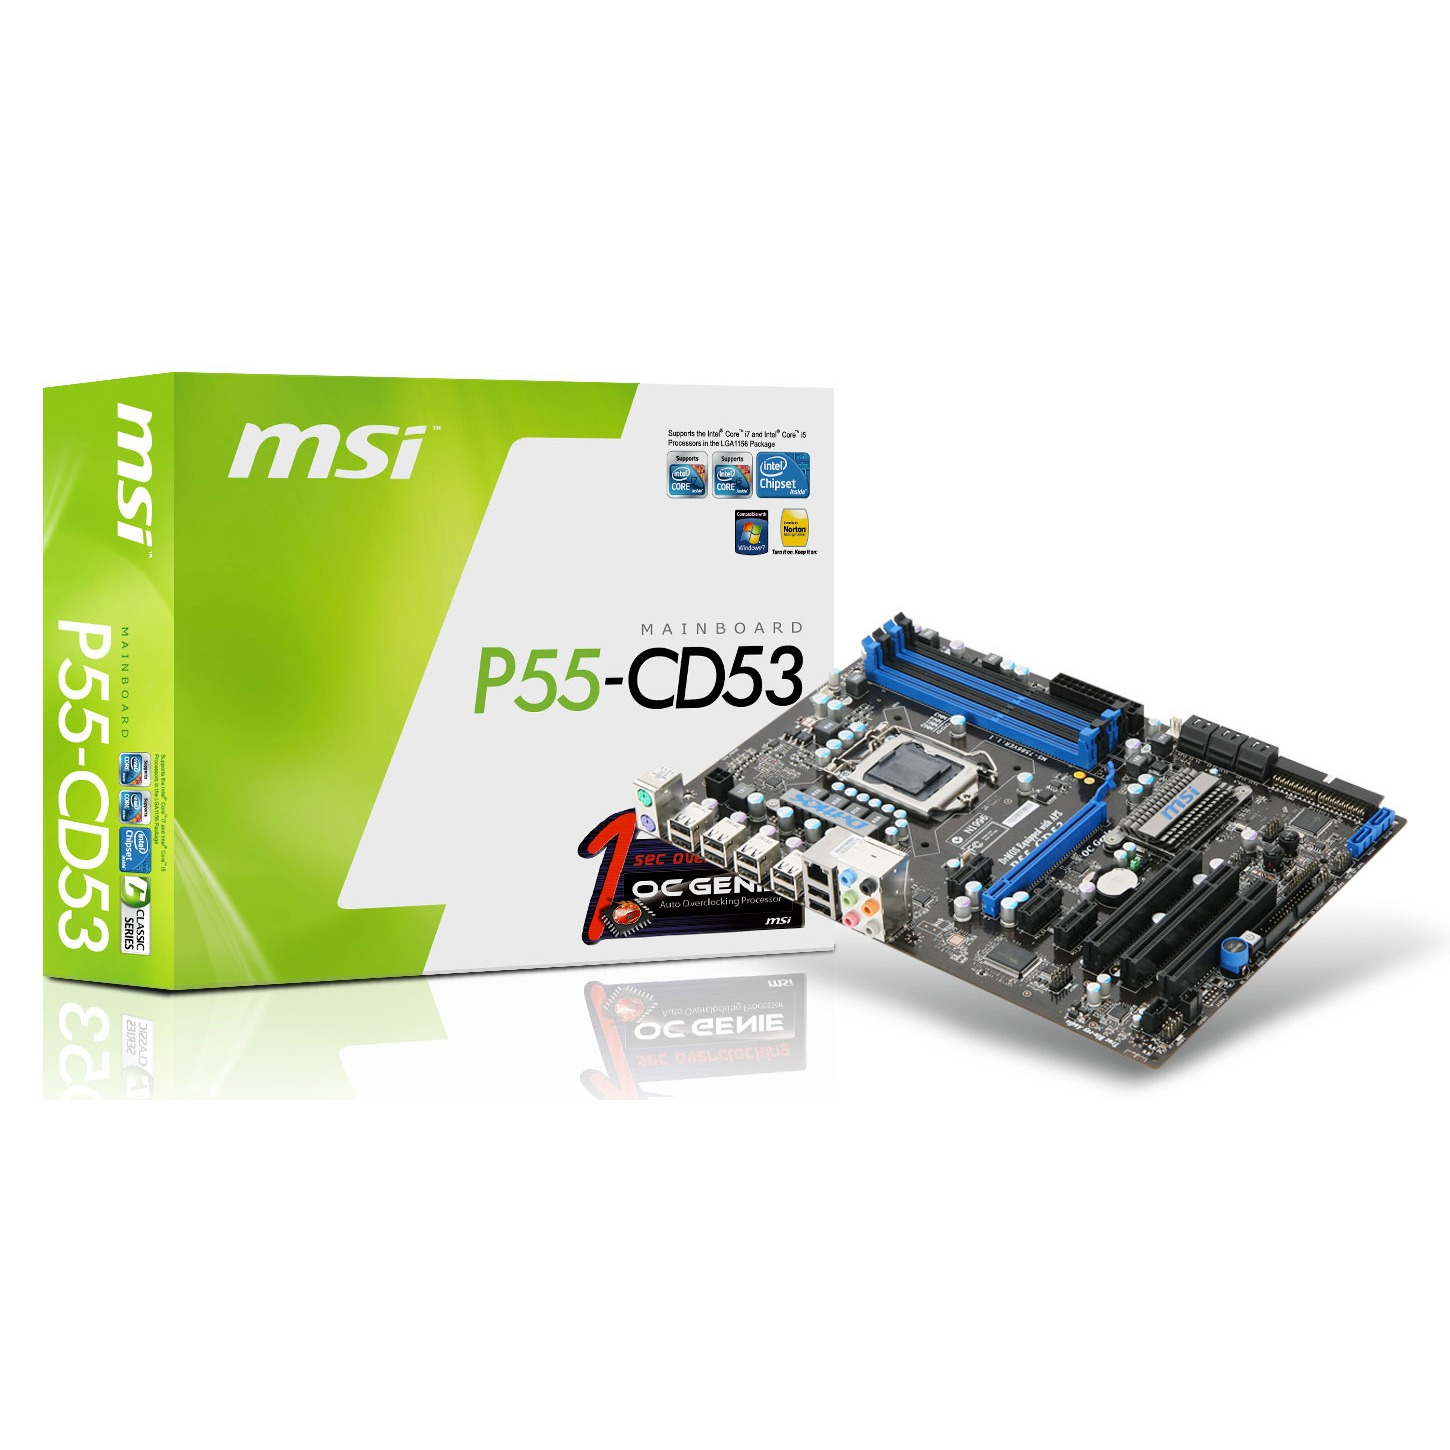 Carte mère MSI P55-CD53 MSI P55-CD53 (Intel P55 Express) - ATX